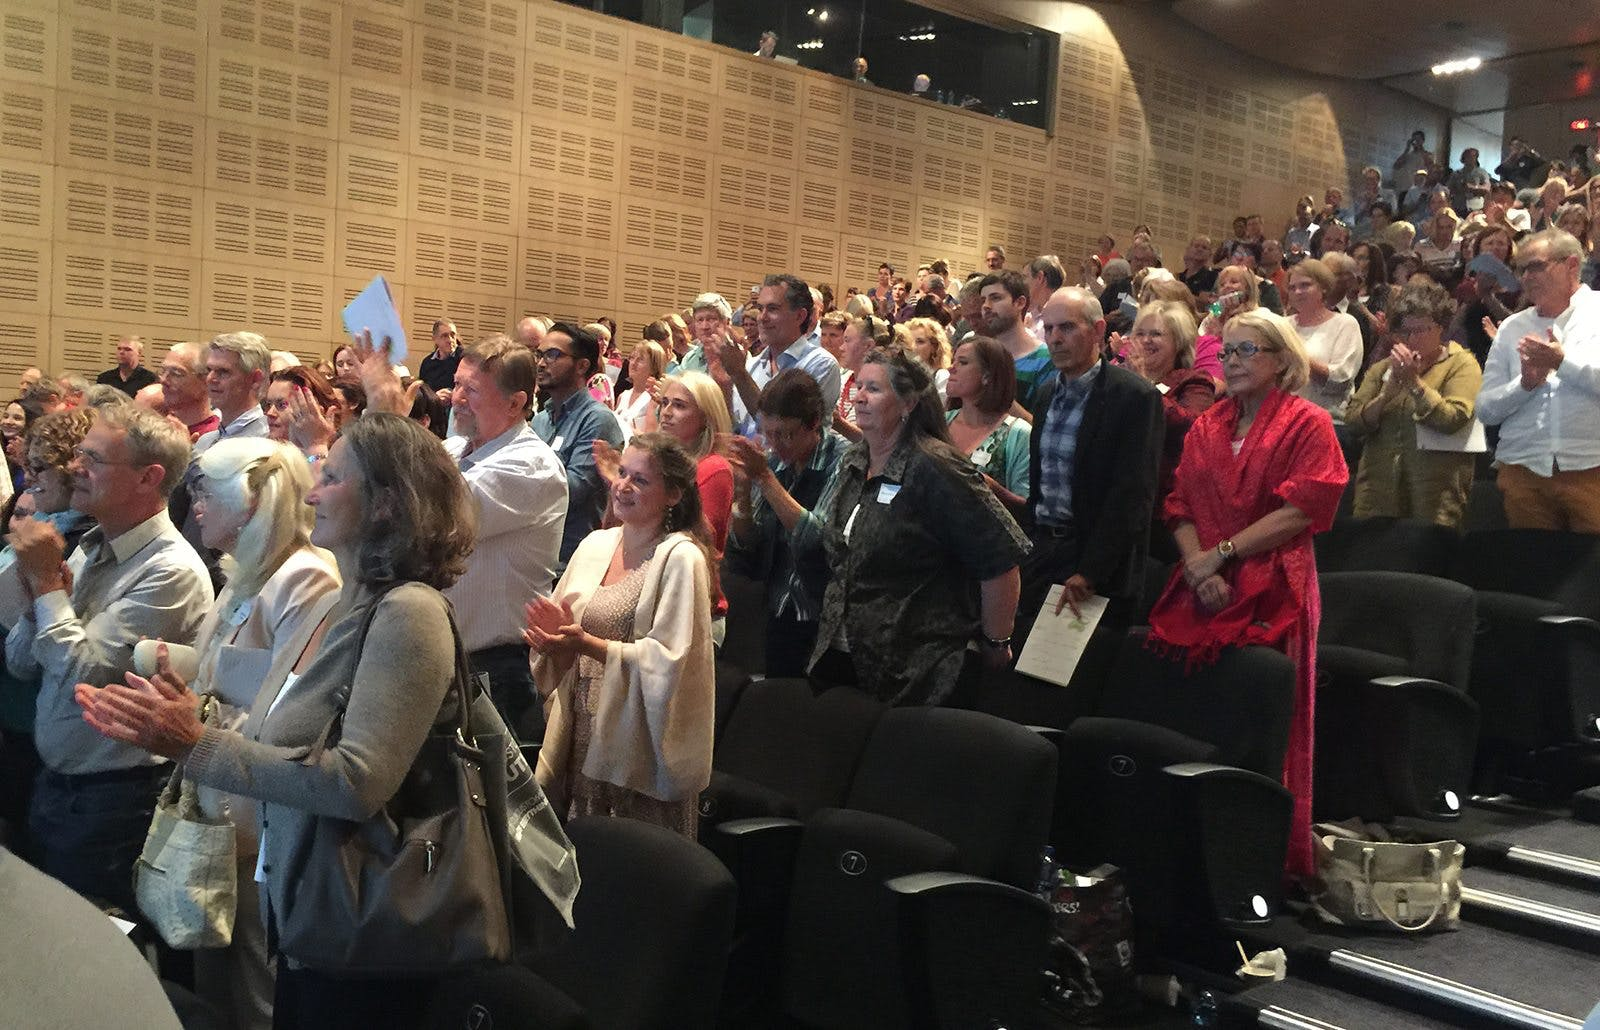 An Amazing LCHF Conference